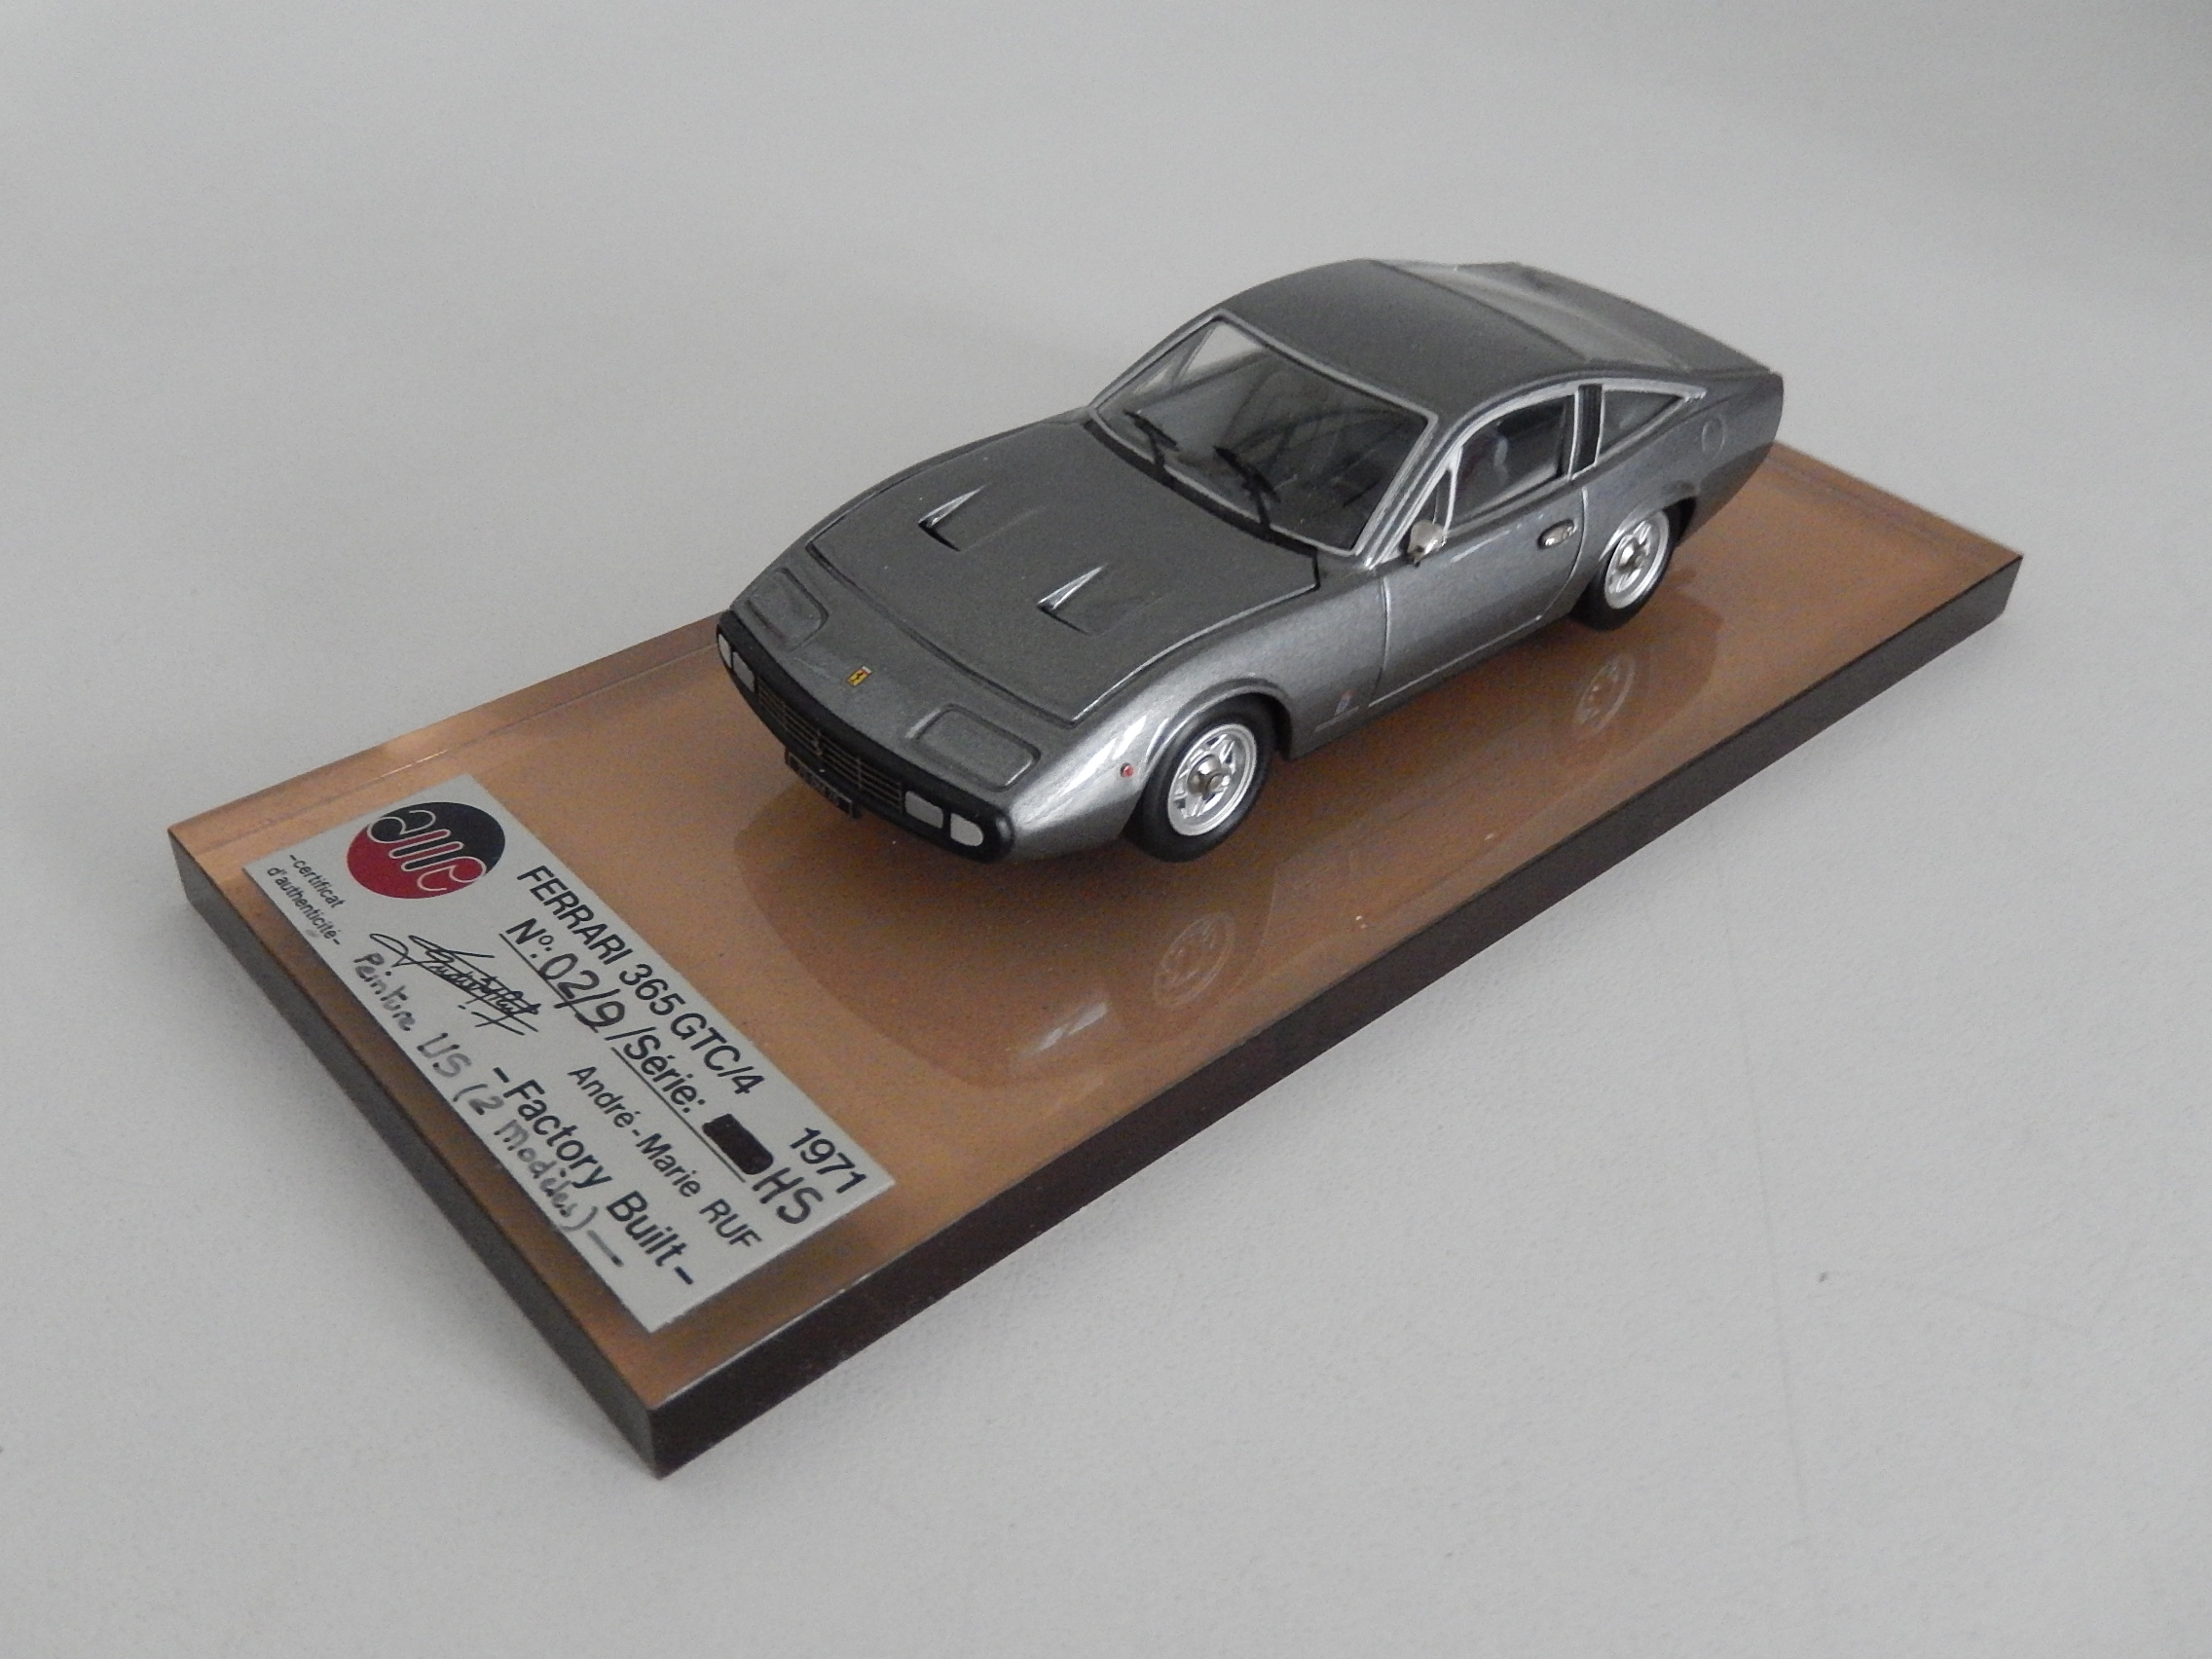 AM Ruf : Ferrari 365 GTC4 dark grey metal --> SOLD